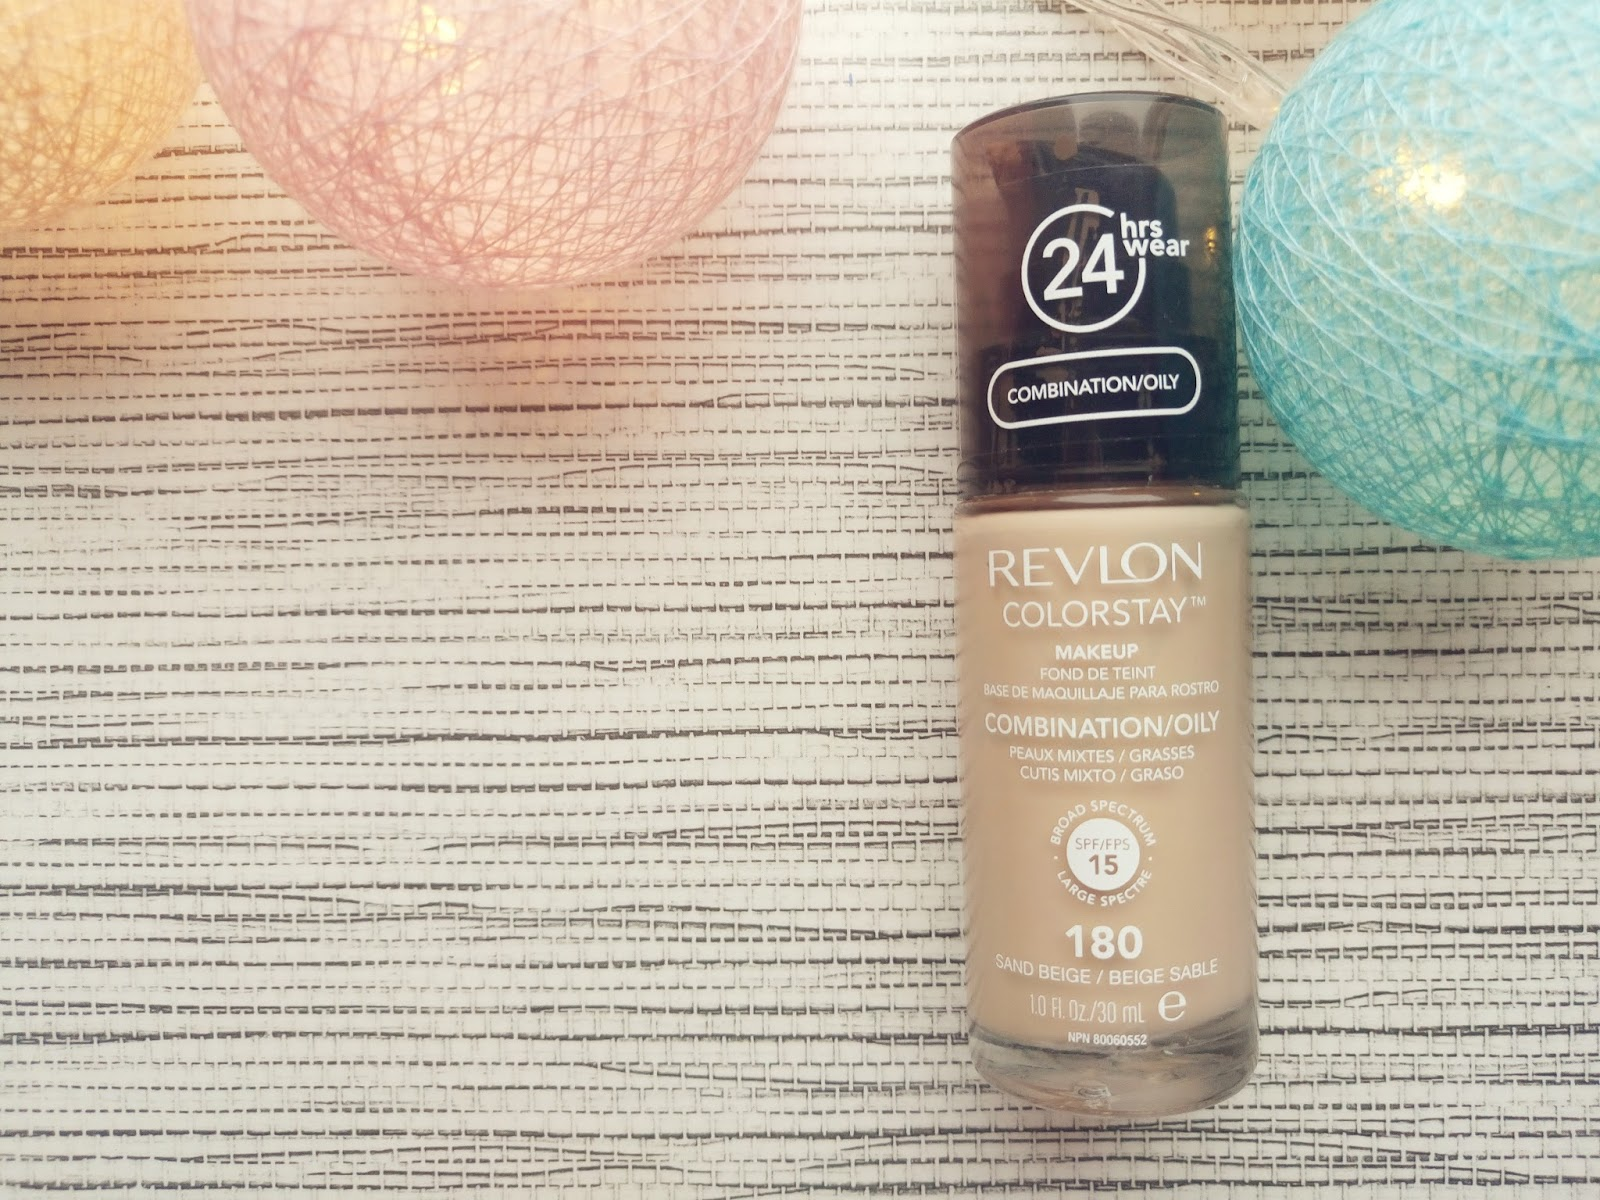 REVLON COLORSTAY  coloursof-beauty.blogspot.com